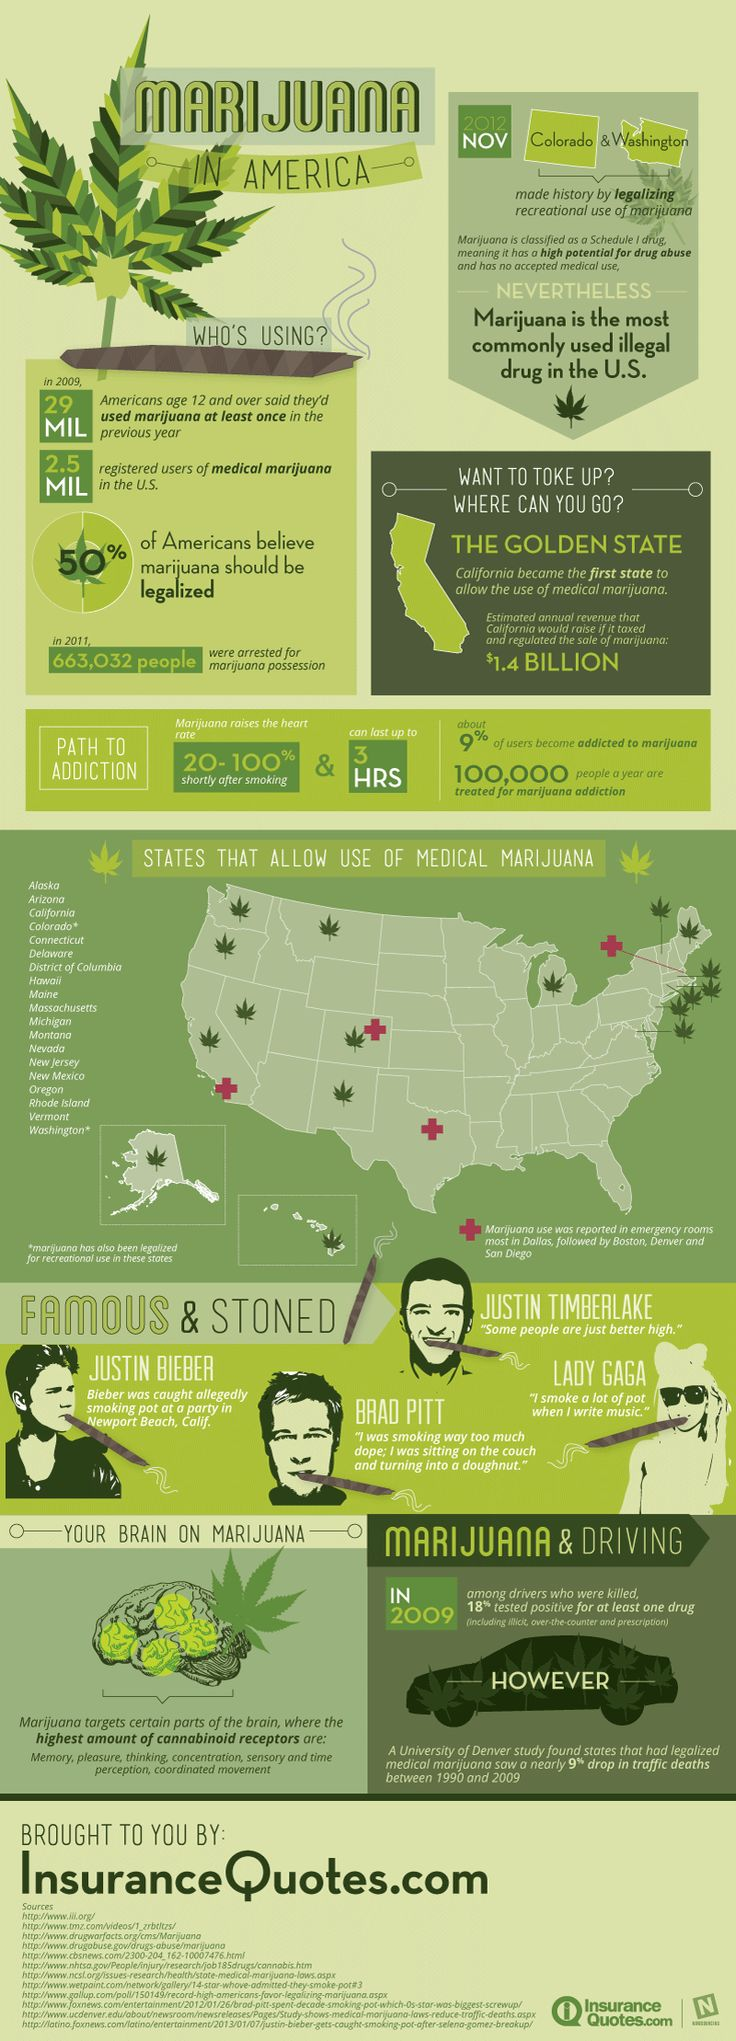 This infographic takes a look at marijuana in America. More specifically, who's using it, and how its effects.